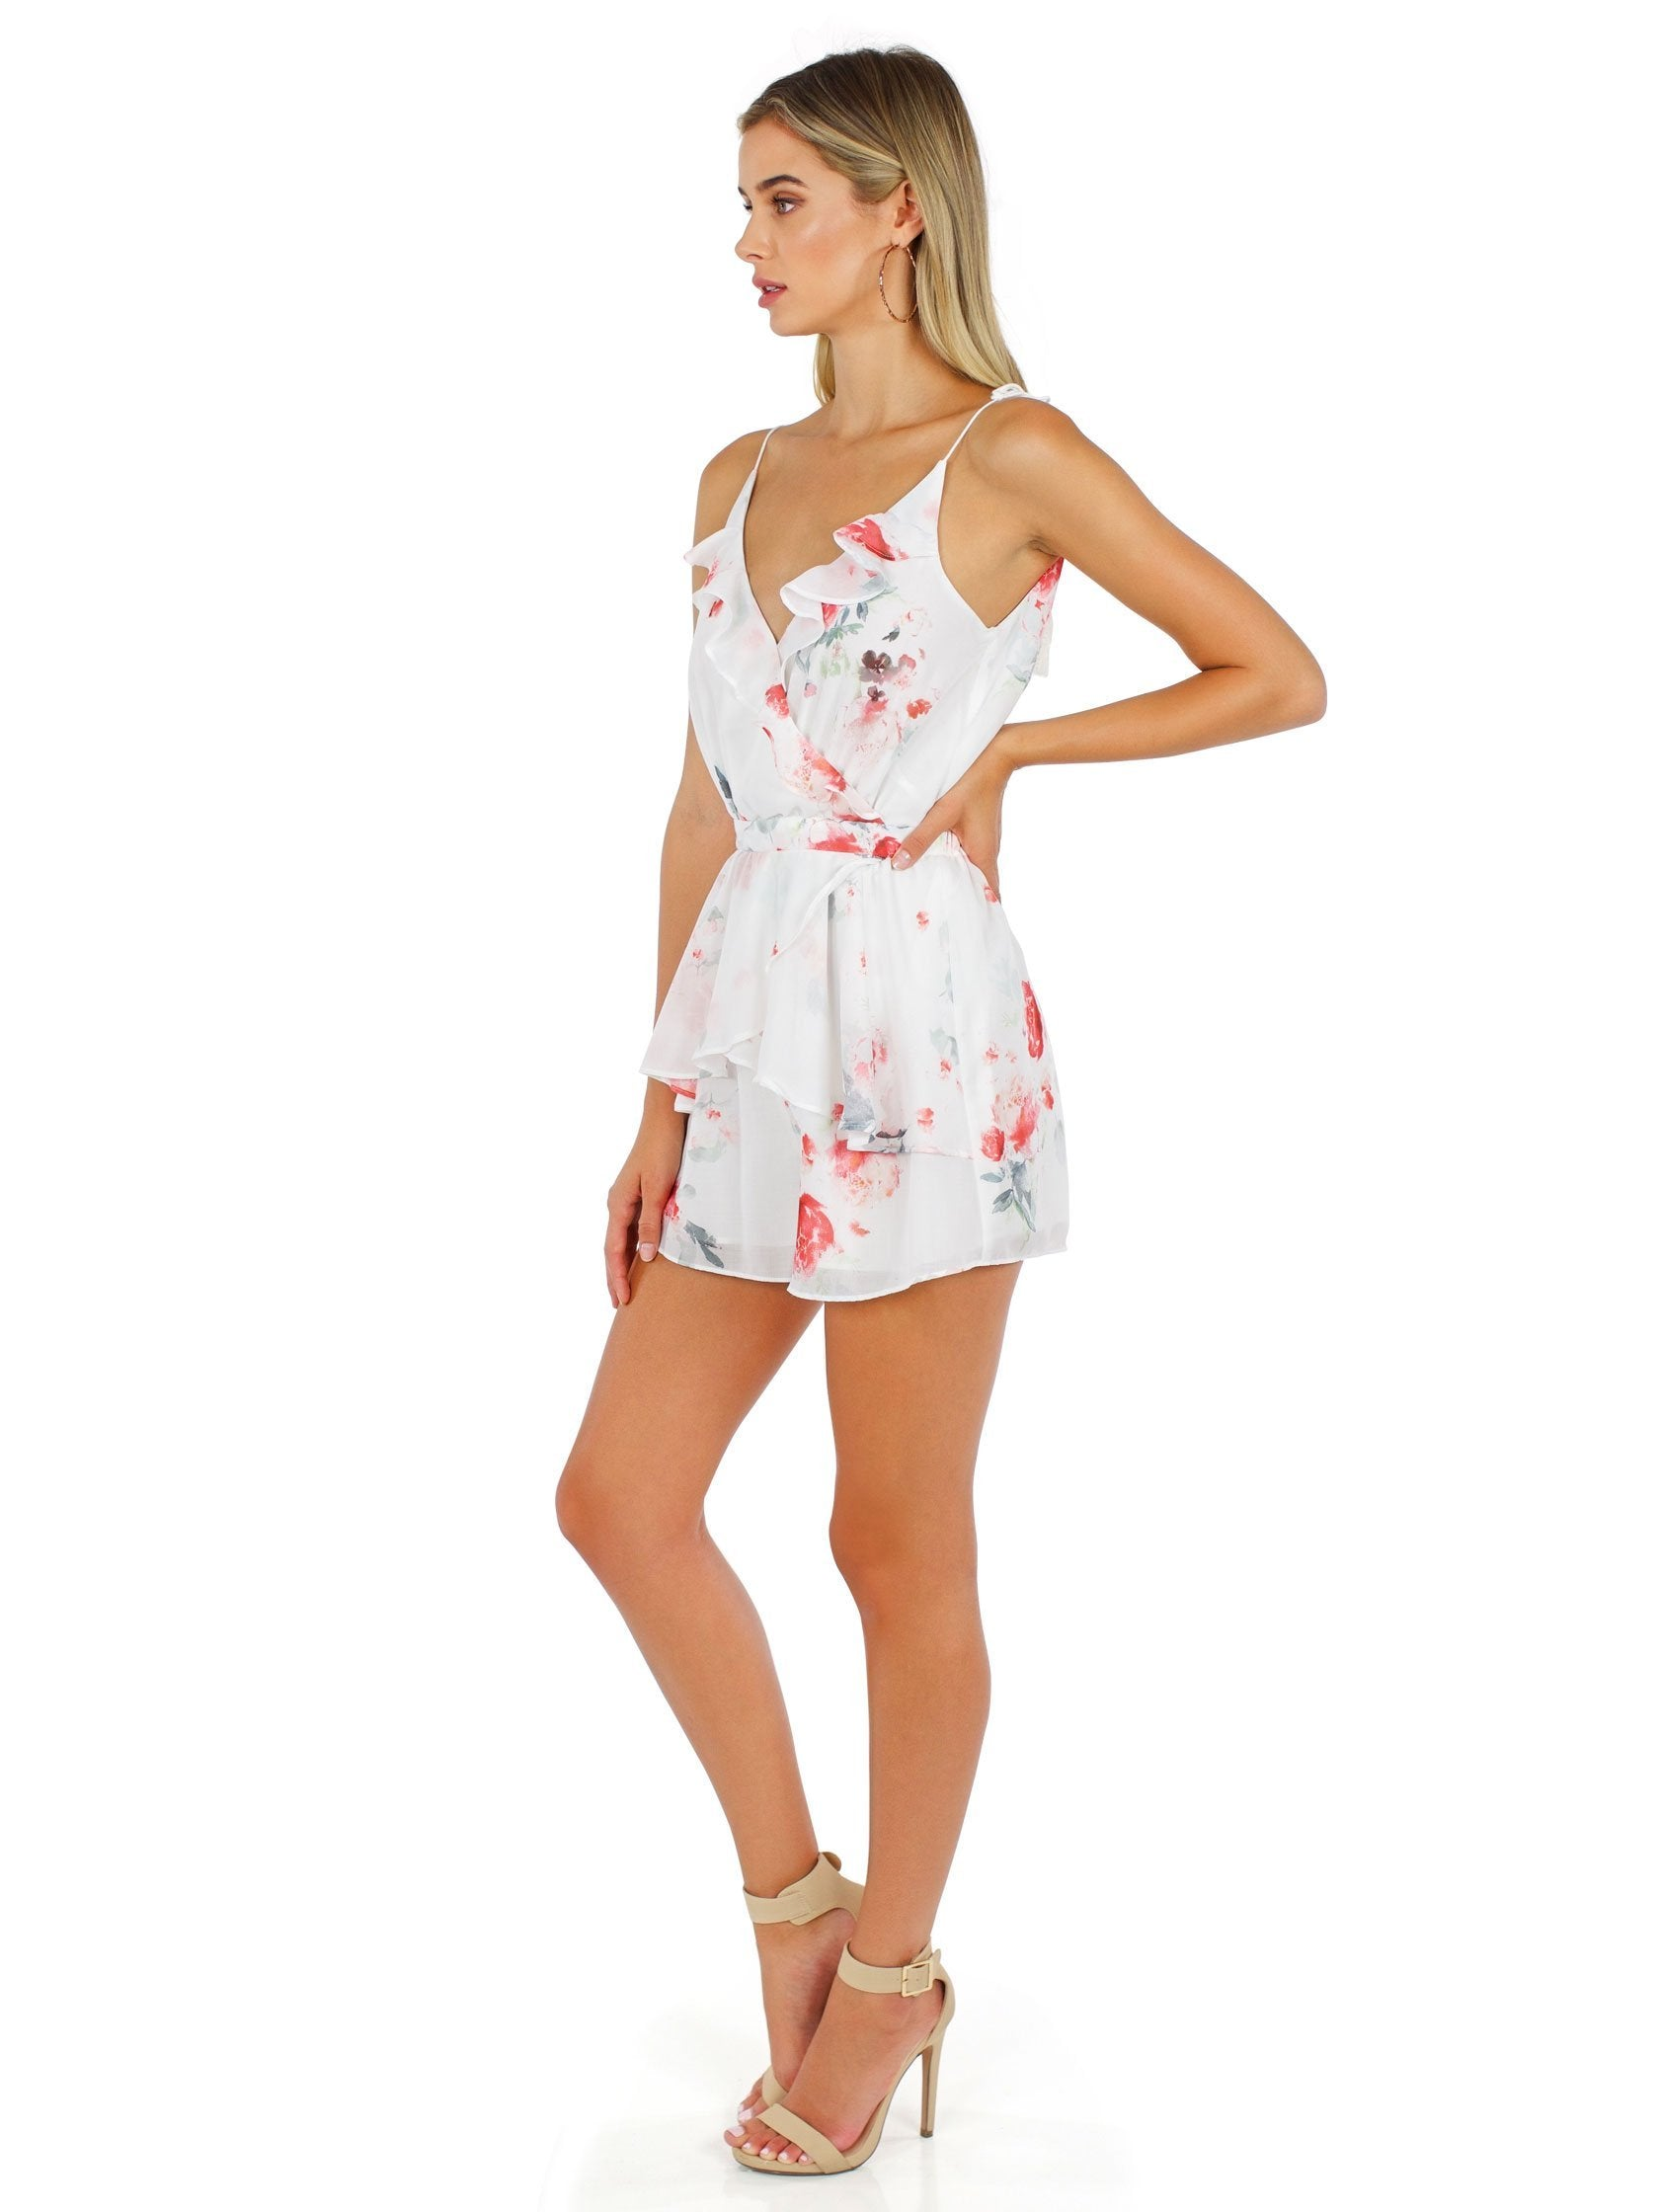 Woman wearing a romper rental from The Jetset Diaries called Isabella Romper